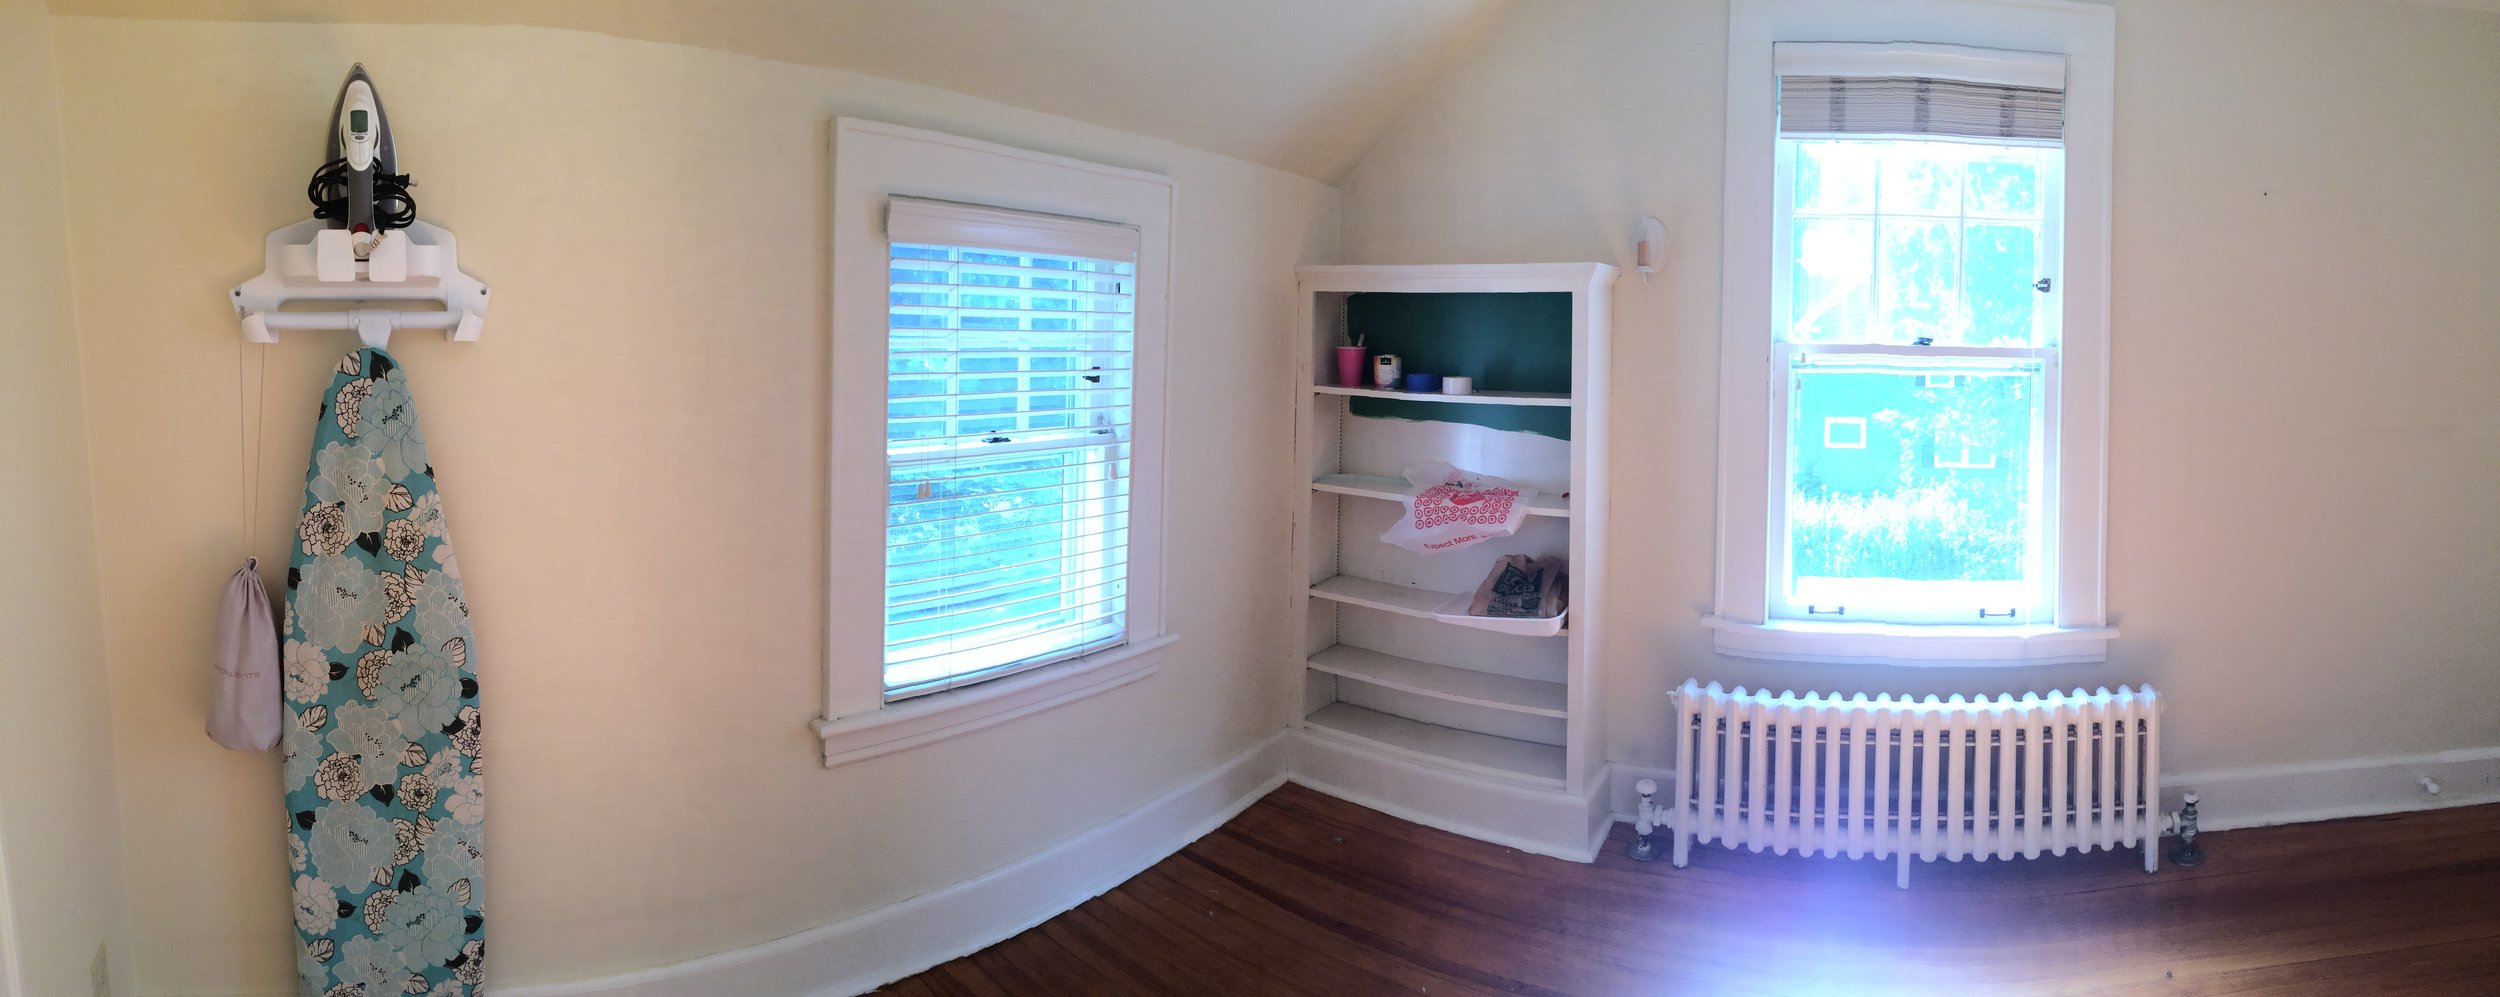 """The """"BEFORE"""".Current panoramic view of the room. Right now it has nothing going on, short of a paint sample I tested in the built in! This space is sad. It needs way more than a facelift, it needs an entire overhaul."""